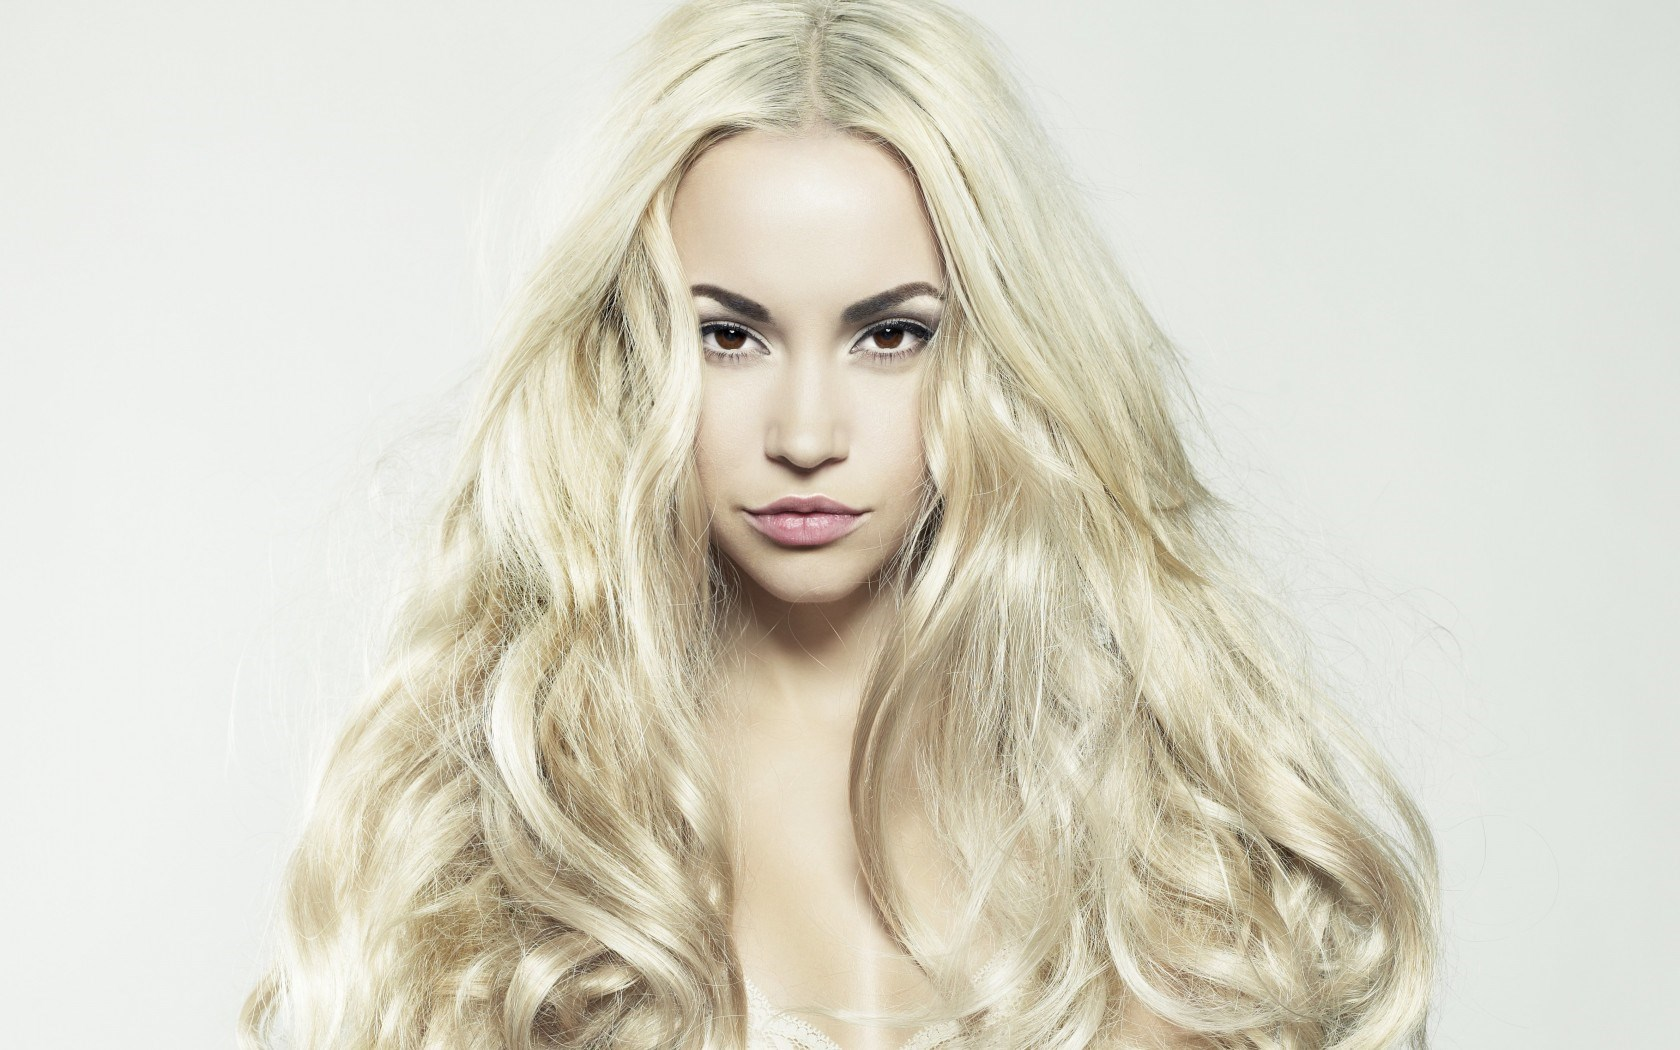 capelli lunghi biondi blonde-girrl-long-hair-make-up-beautiful-models-photo-wallpaper